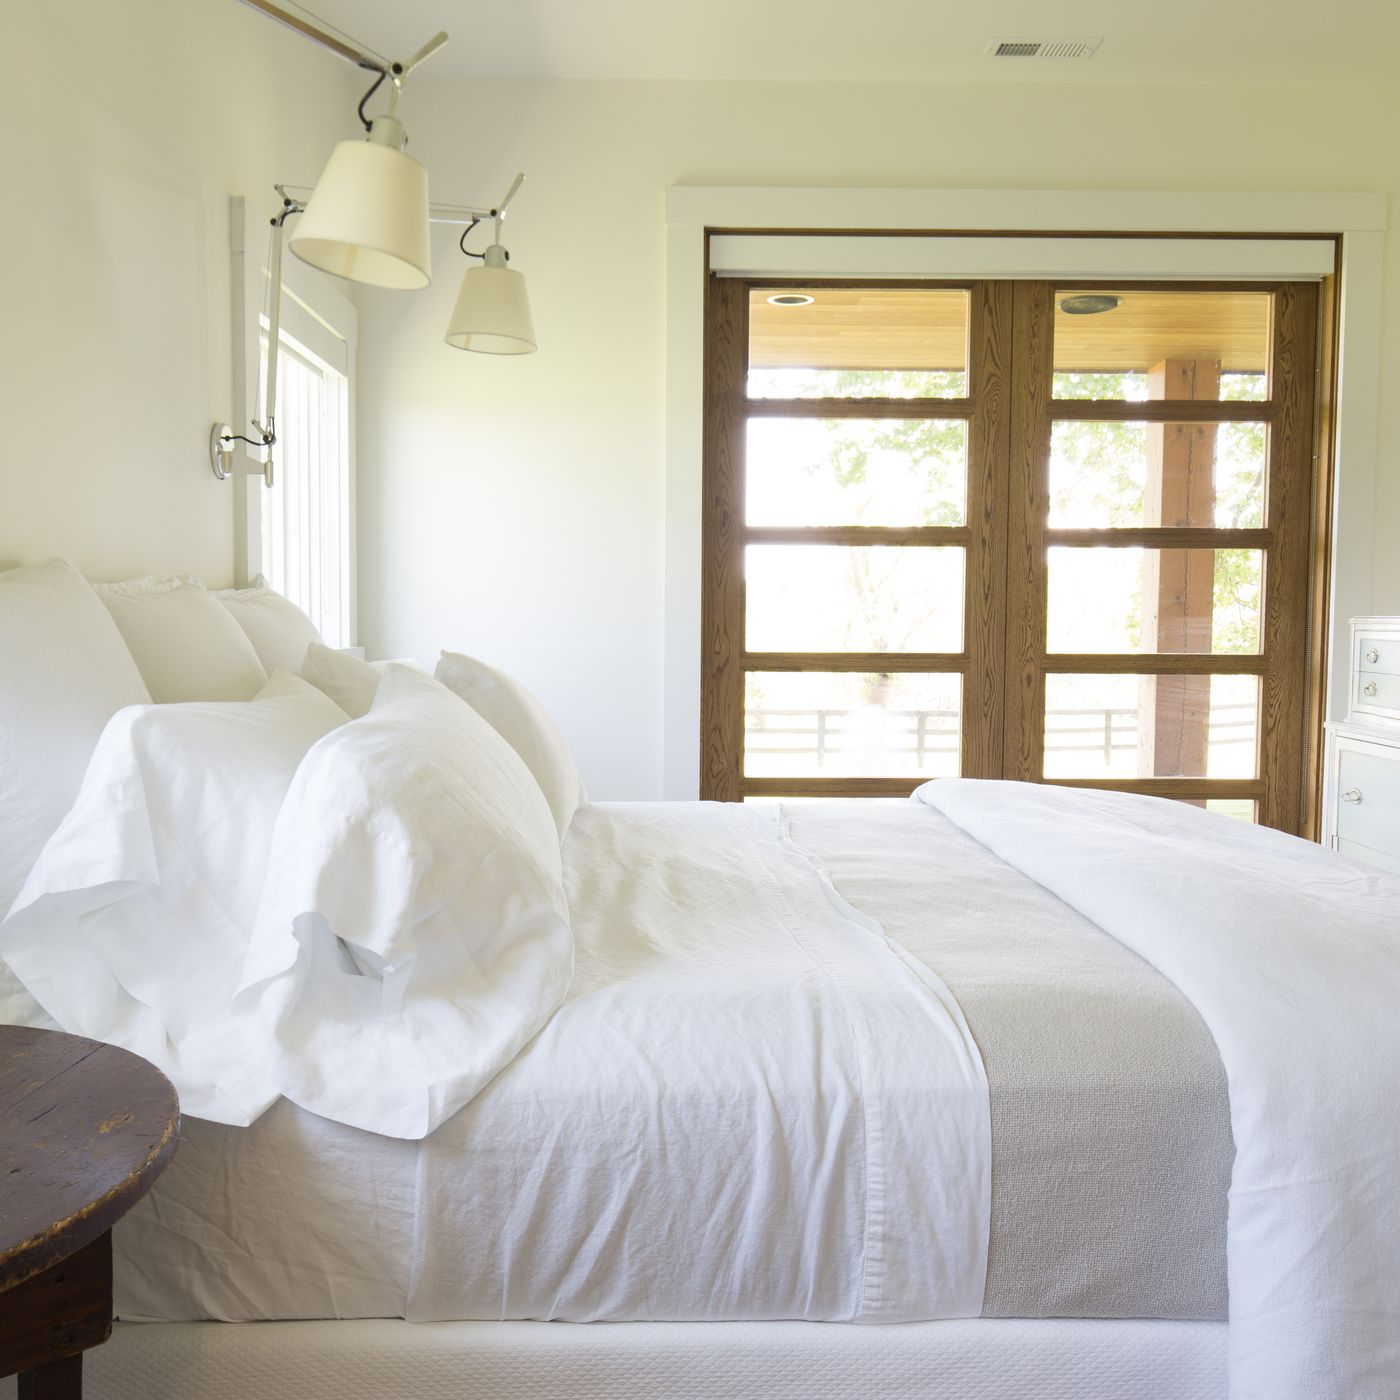 - The Rules Of White Bedding - Racked